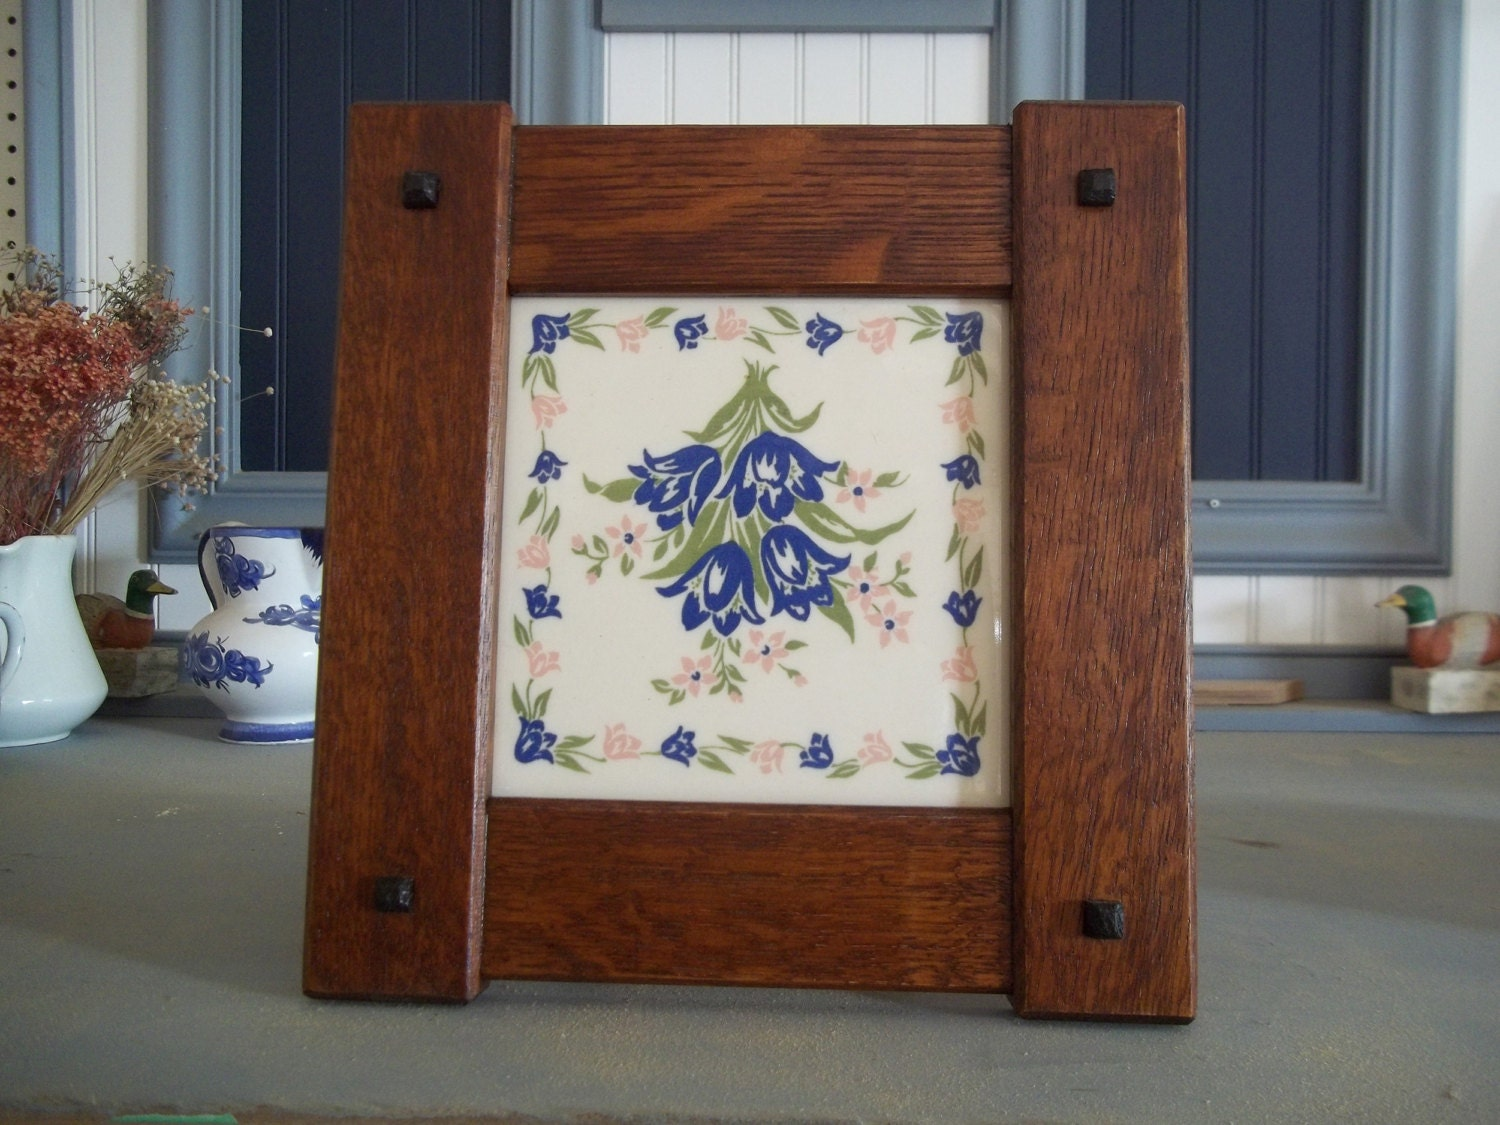 x 6 tile frame handcrafted mission style quartersawn white oak zoom